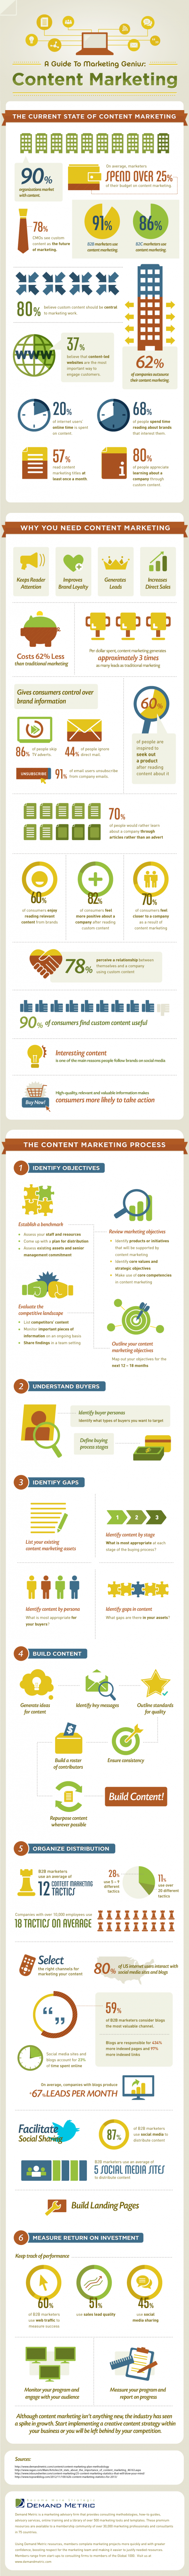 Begginers Guide to Content Marketing